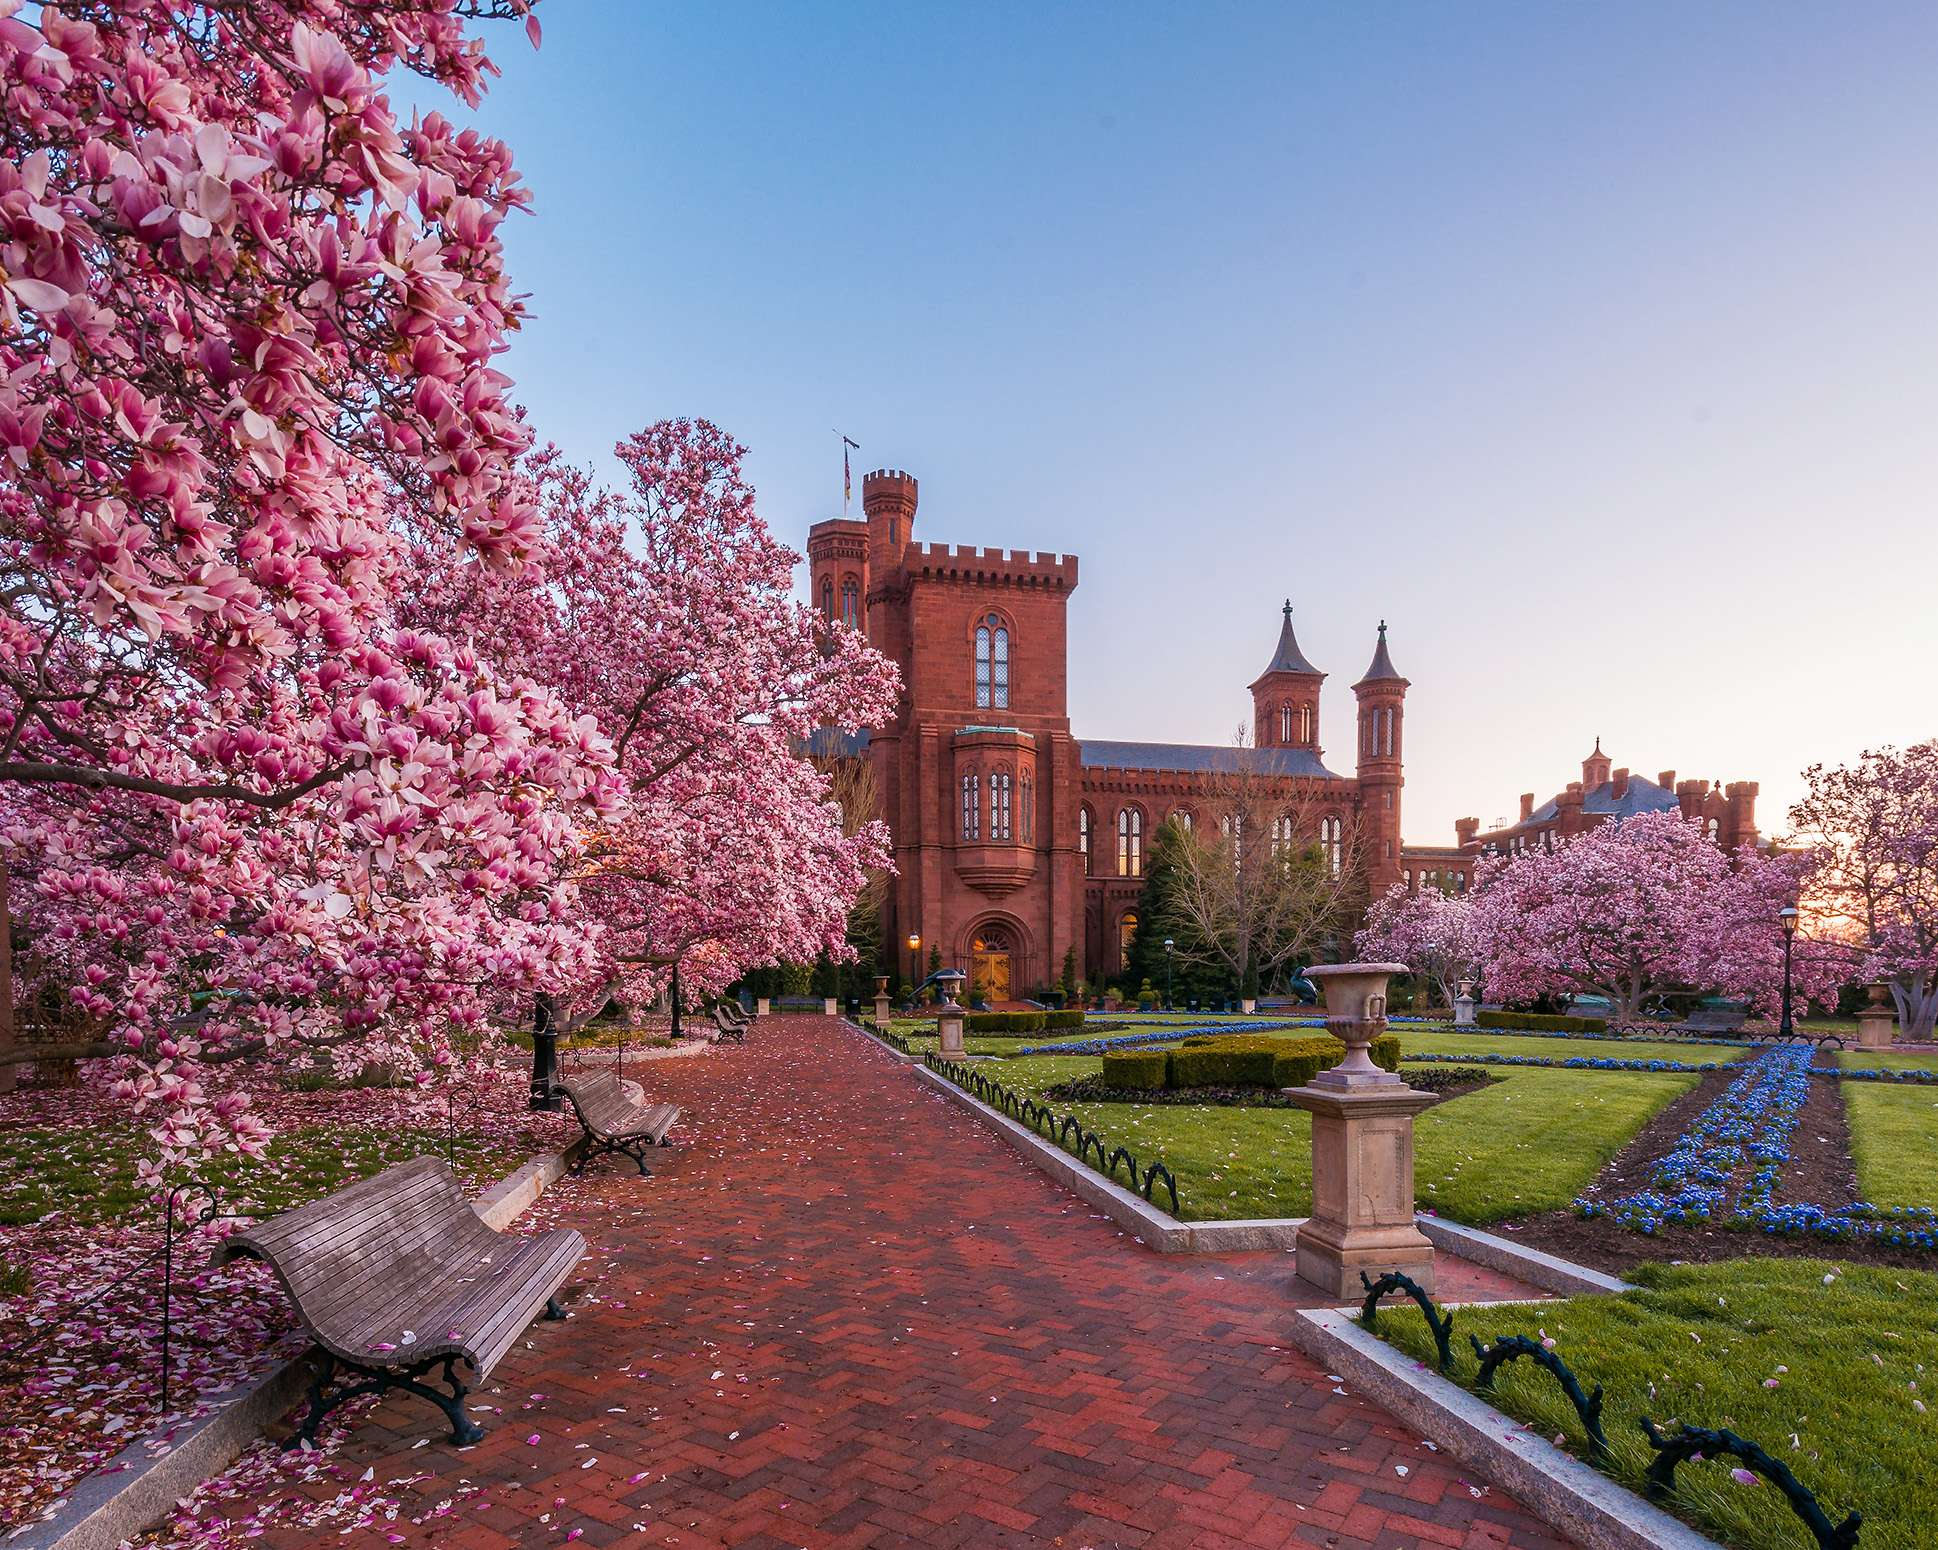 Magnolia trees give a wonderous display of color in the Smithsonian Castle courtyard as the sun rises to the east.